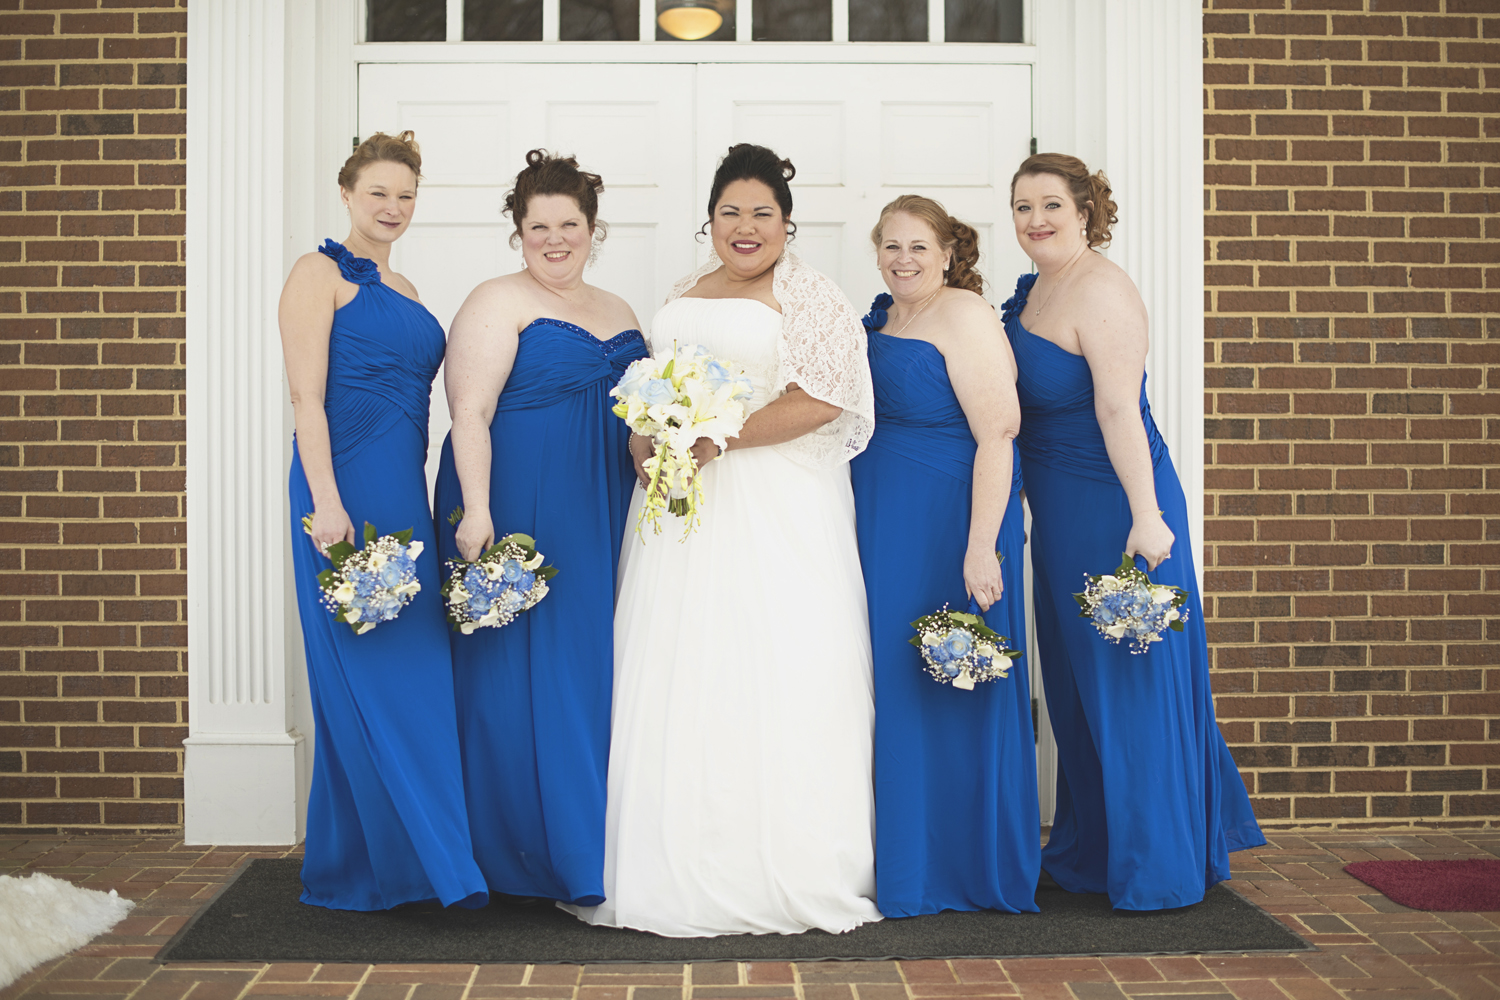 Blue one-shouldered bridesmaid dresses | Bridal party pictures